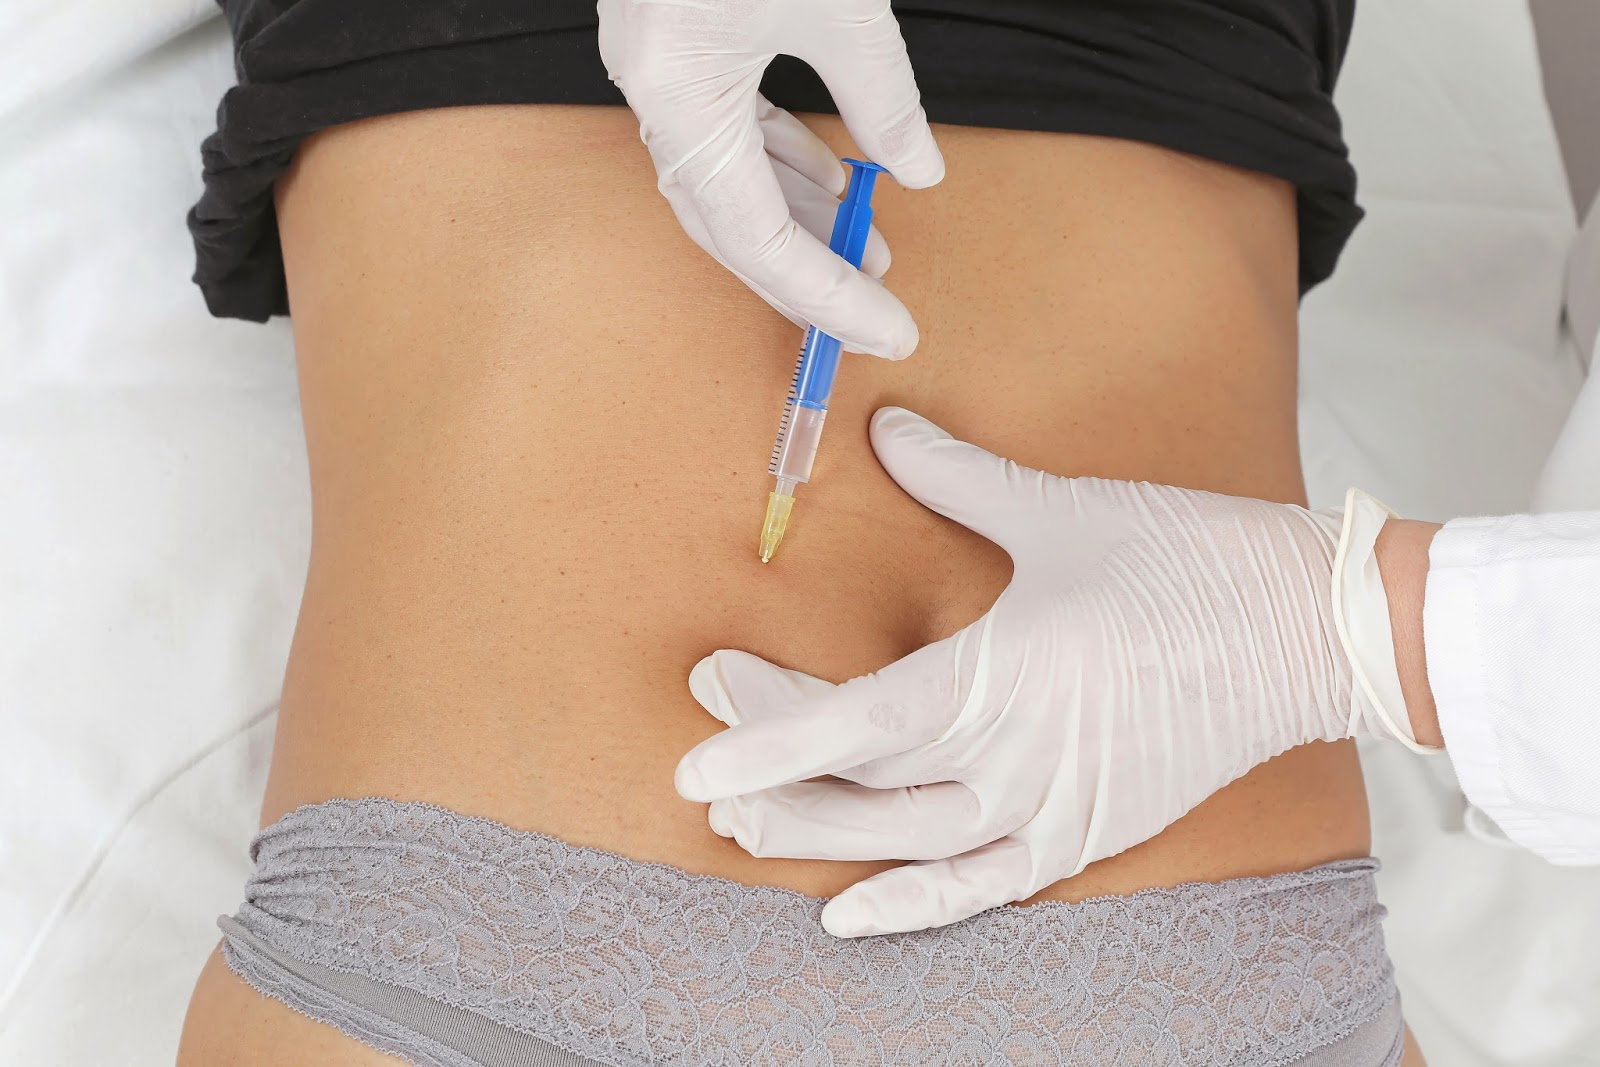 Abdomen Injection